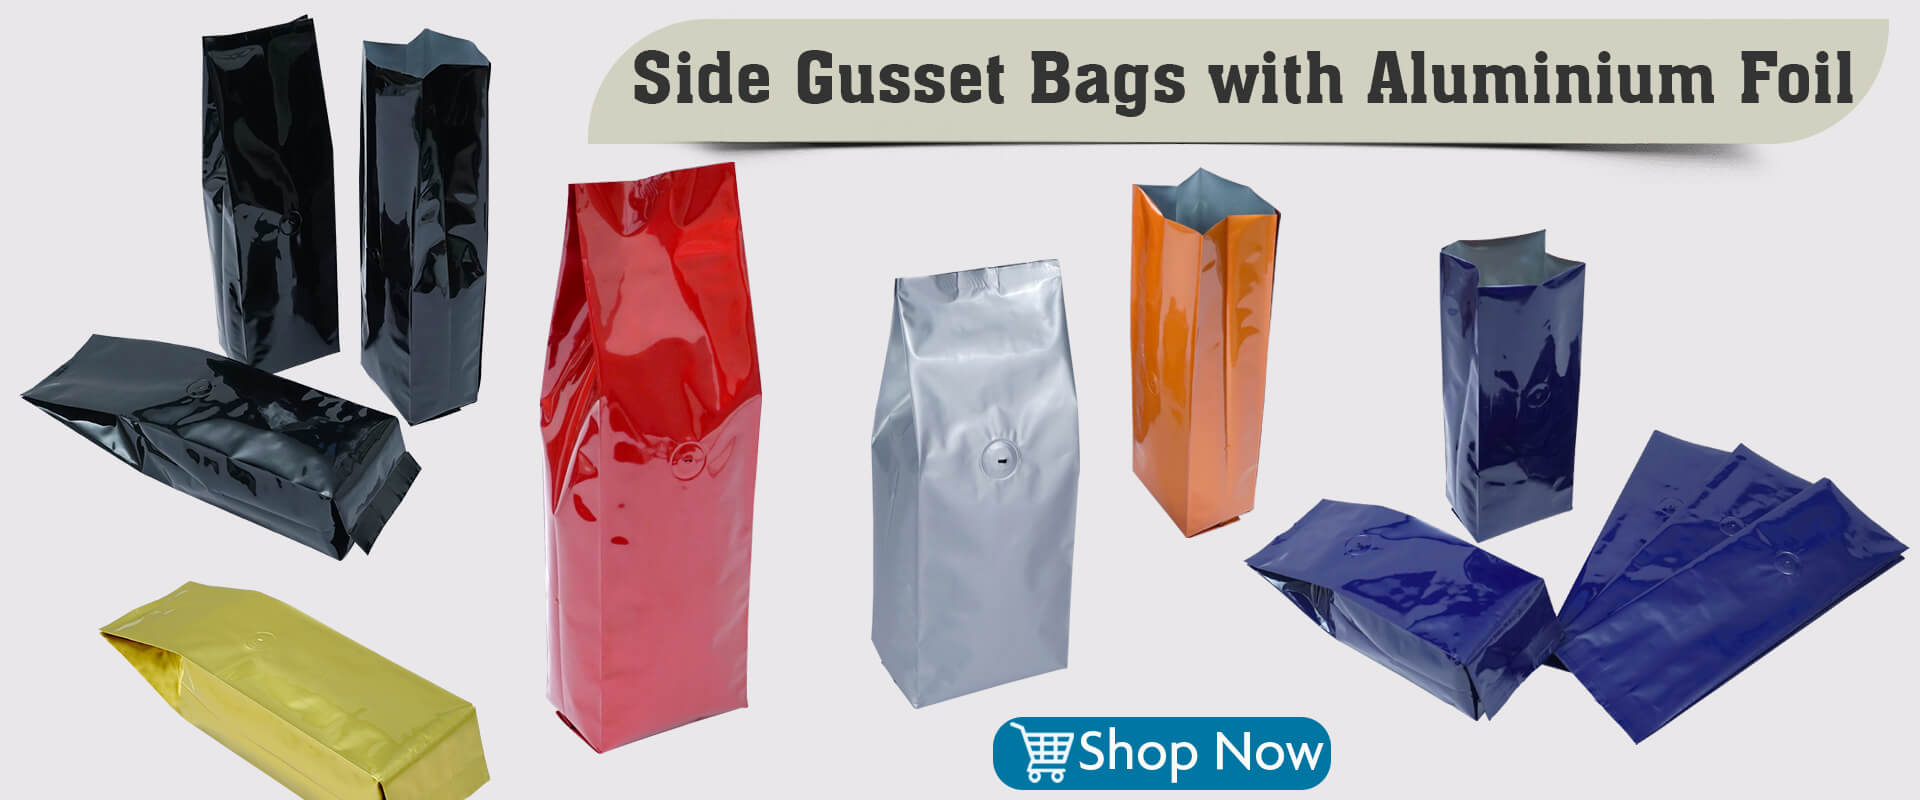 Size Gusset Bags